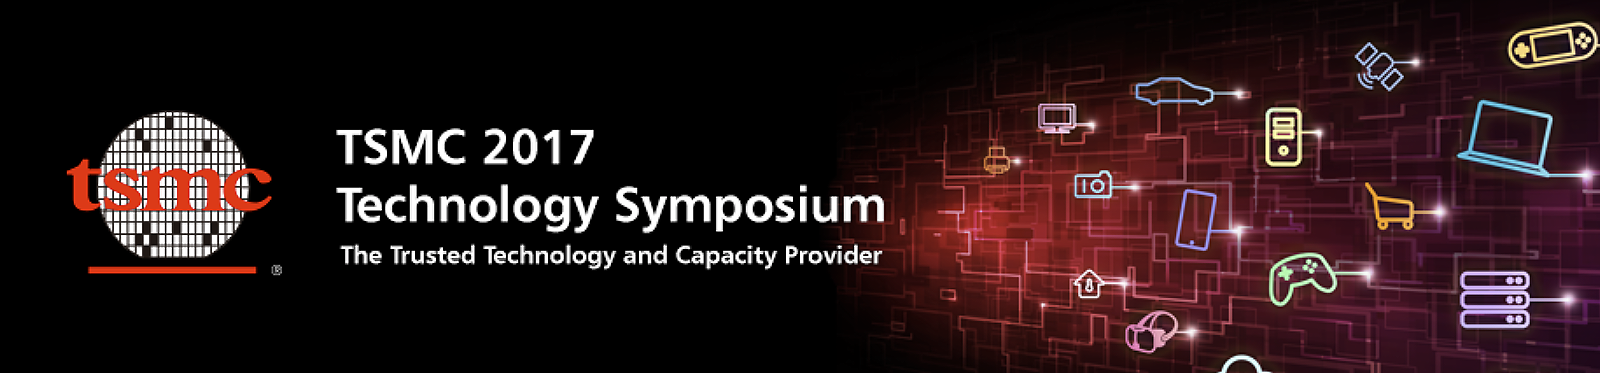 June 13th, TSMC symposium | ICsense